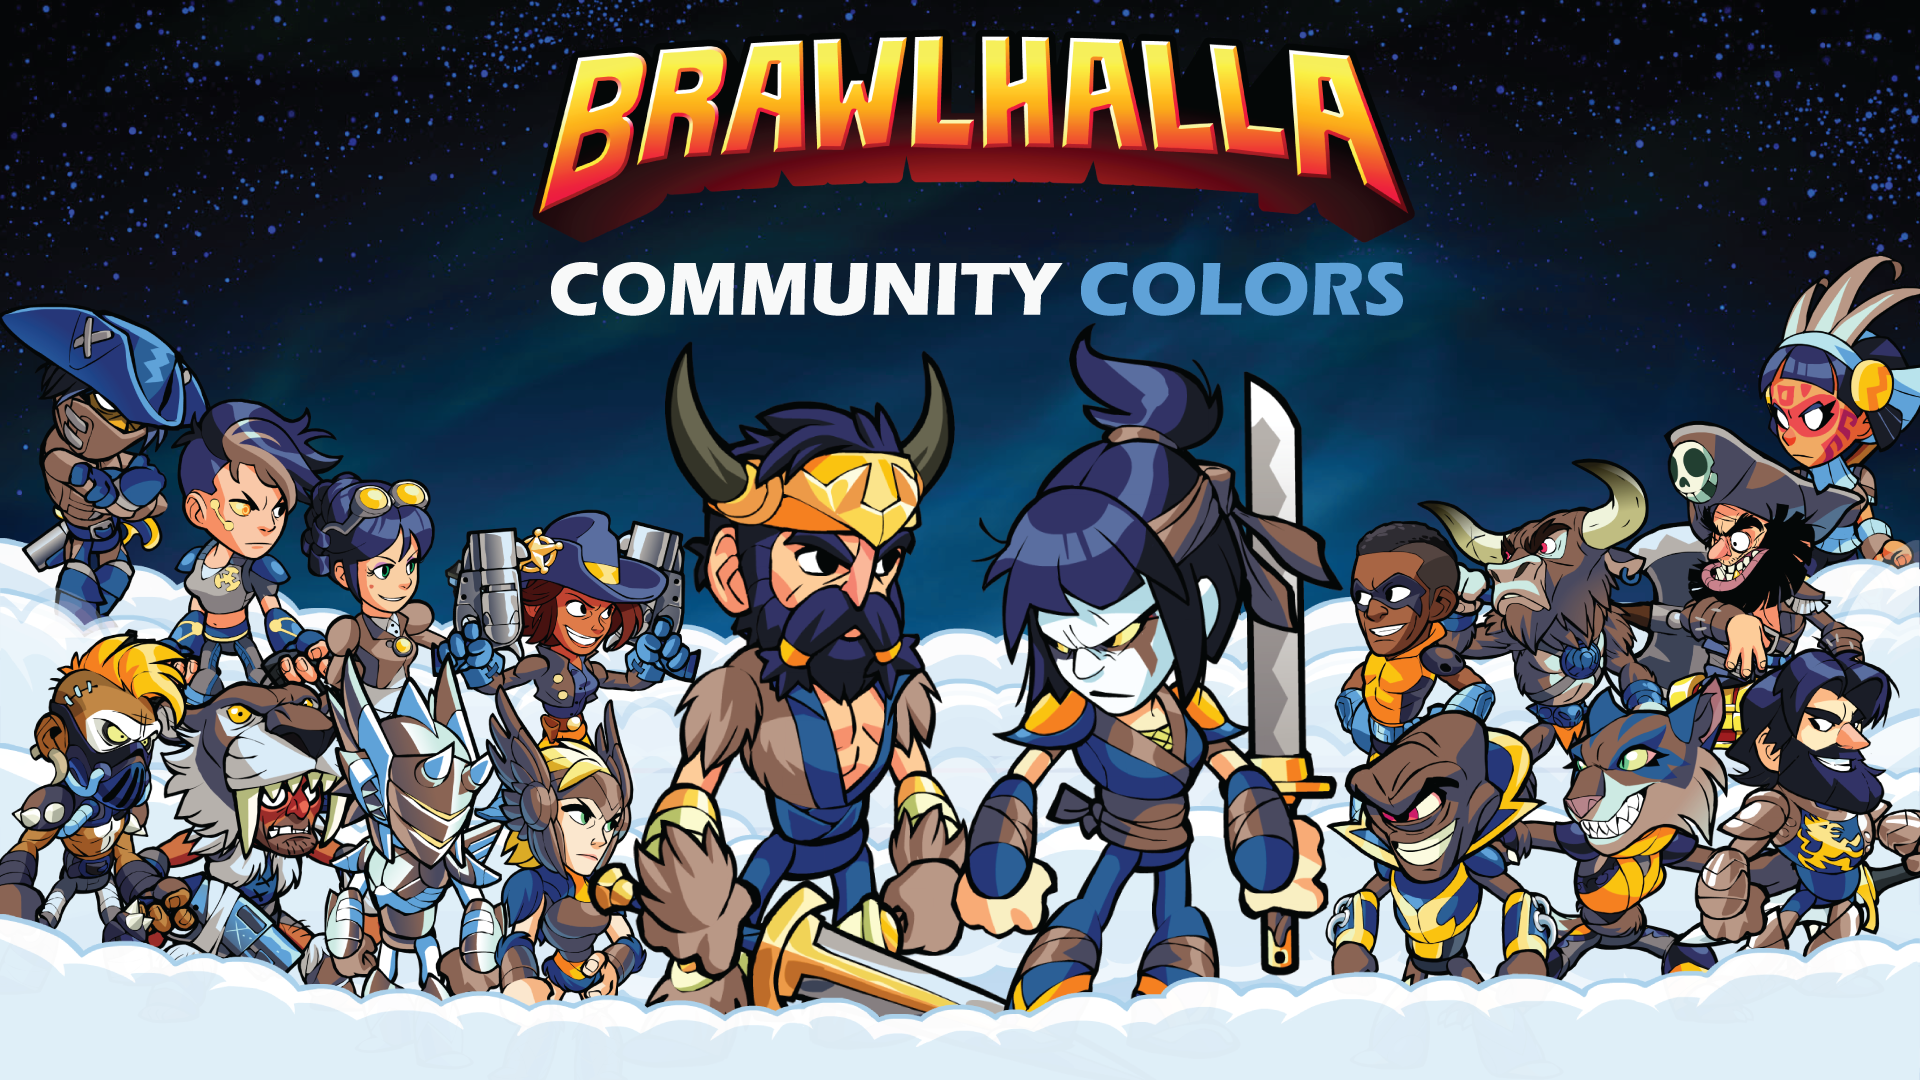 Brawlhalla Community Colors - Everything You Need To Know